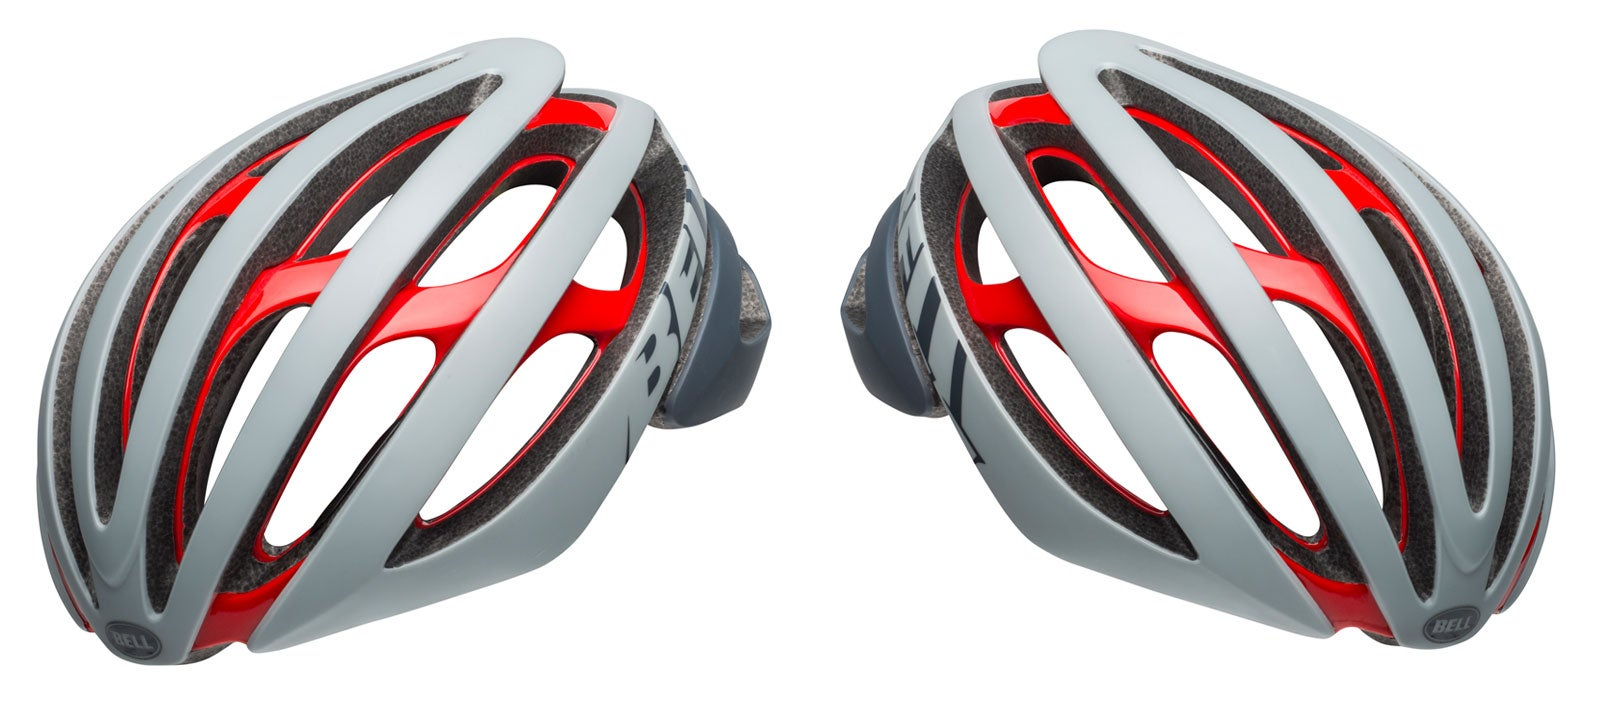 e7a054bcc4e These days road cycling helmets come in a plethora of categories. Some are  light, some are aero, some have MIPS, some cost an arm and a leg, some are  easy ...